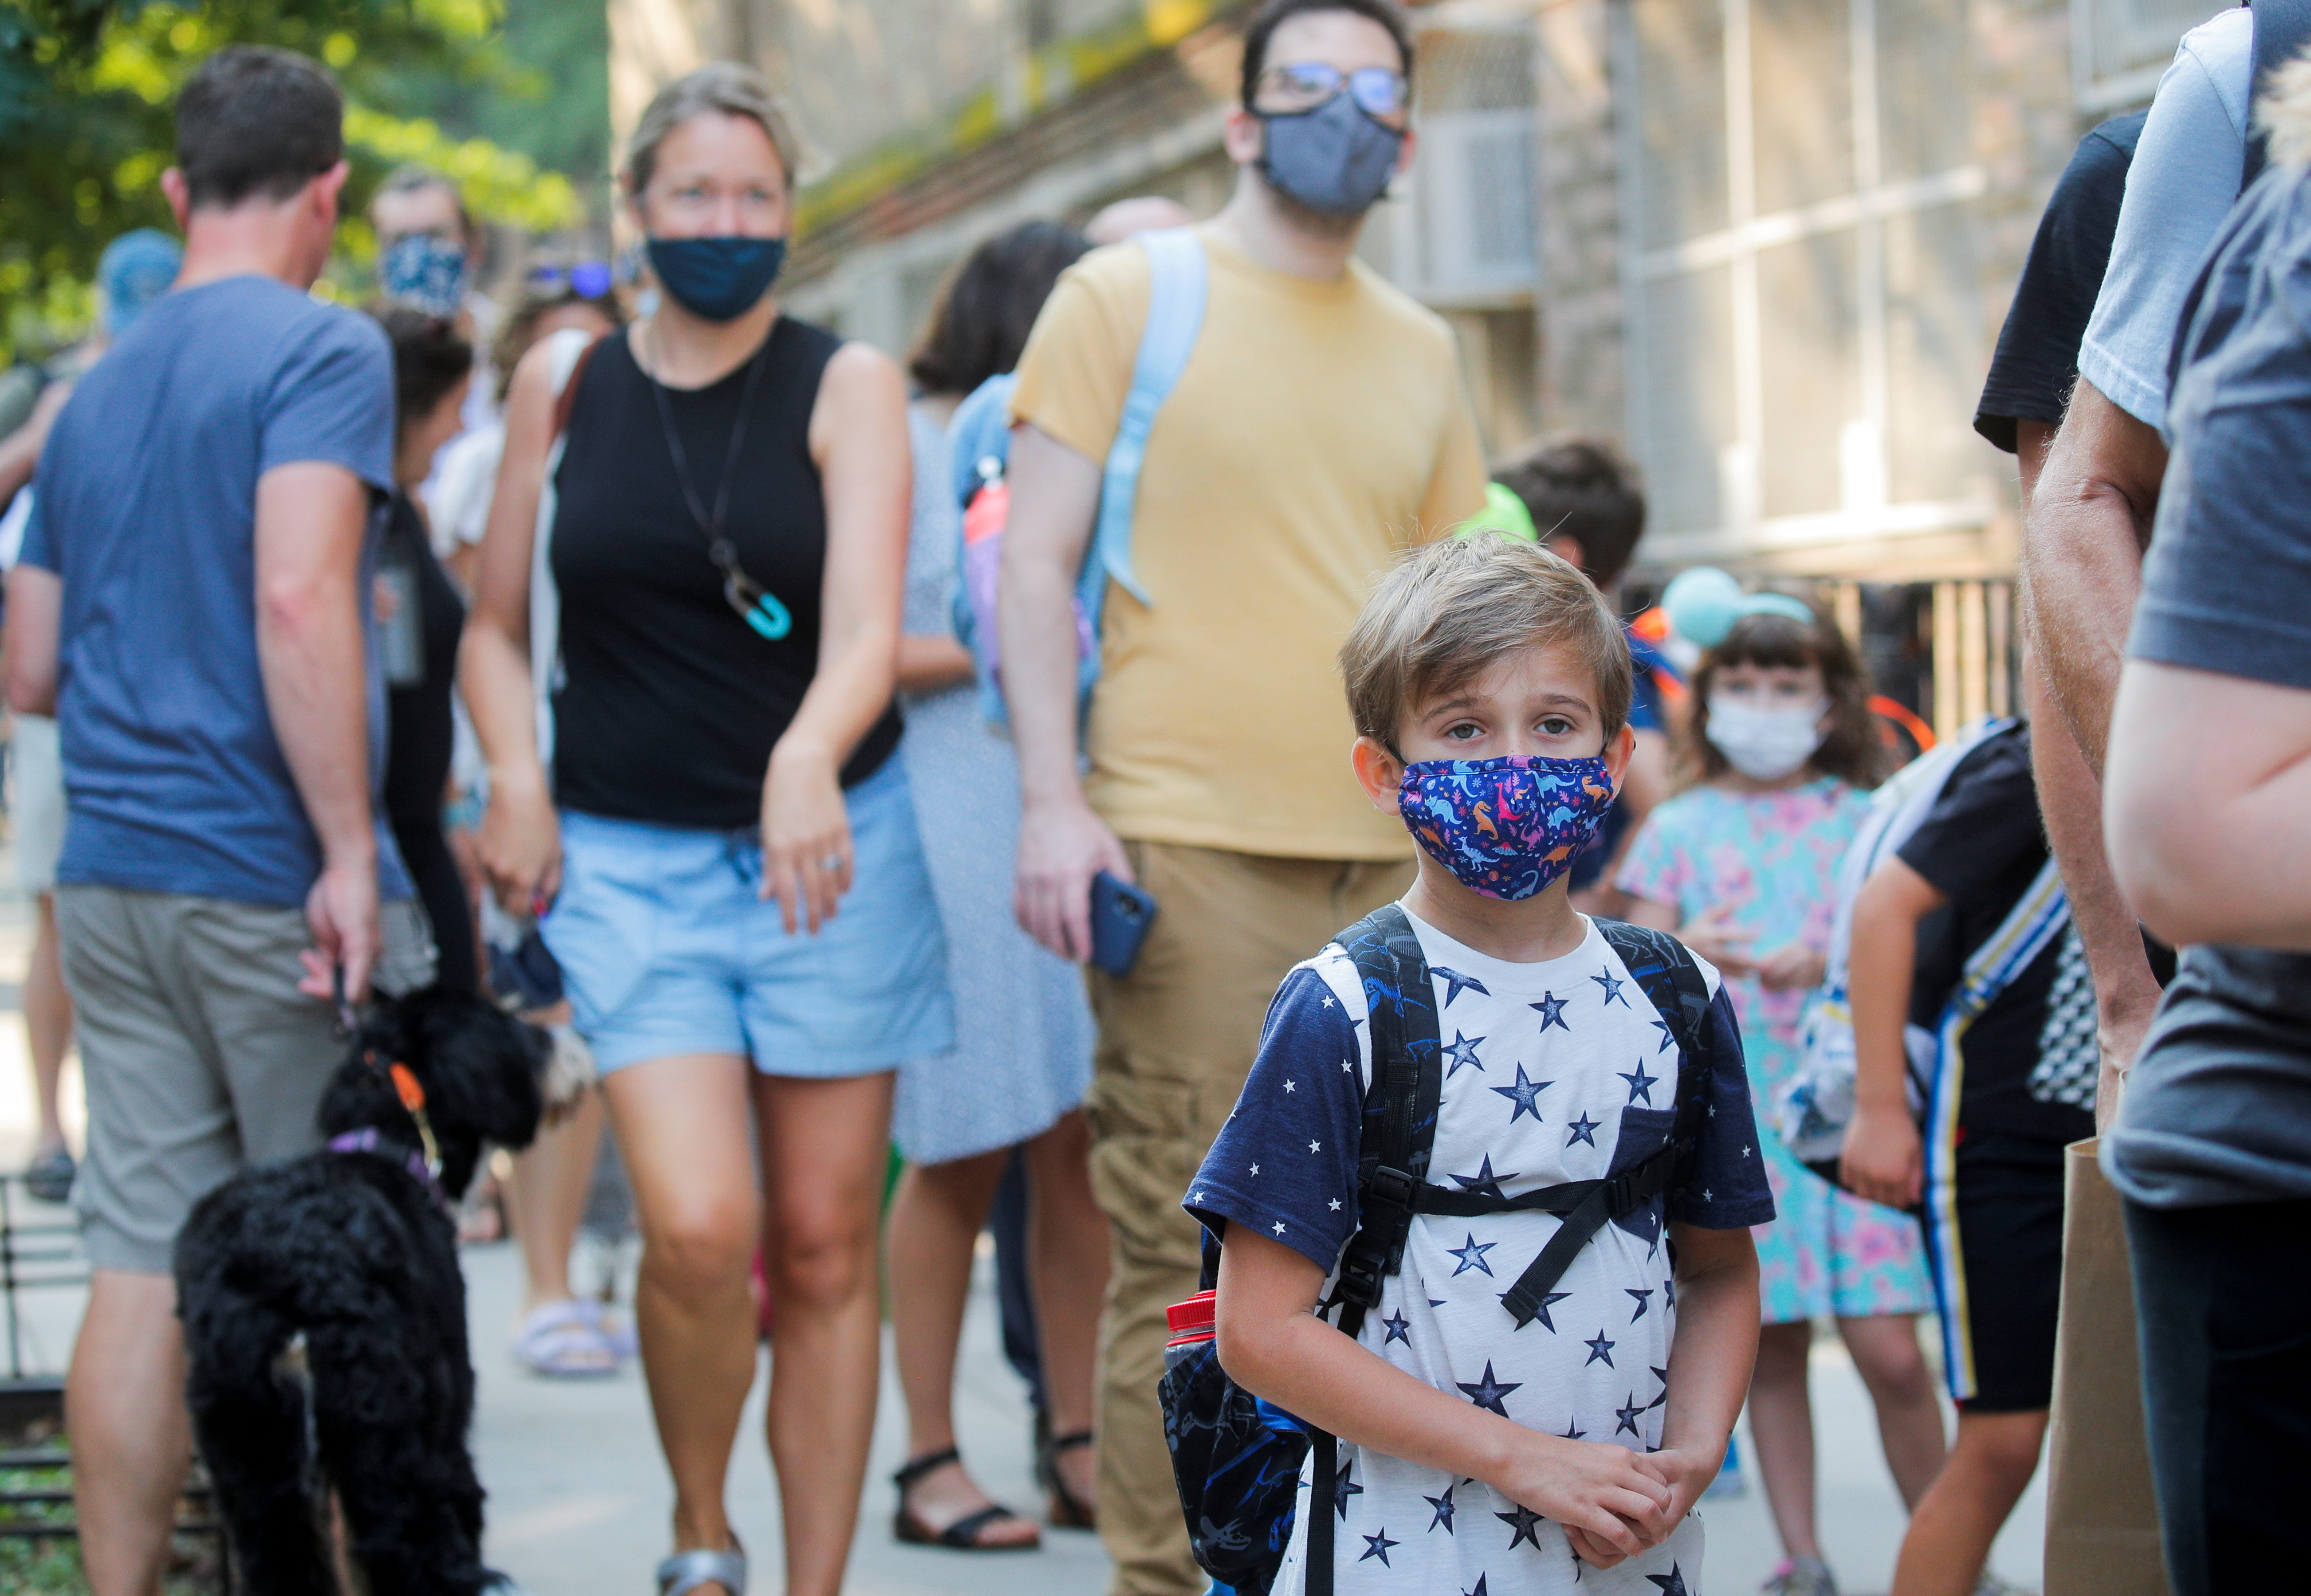 A child wears a face mask on the first day of New York City schools, amid the coronavirus disease (COVID-19) pandemic in Brooklyn, New York, U.S. September 13, 2021. REUTERS/Brendan McDermid